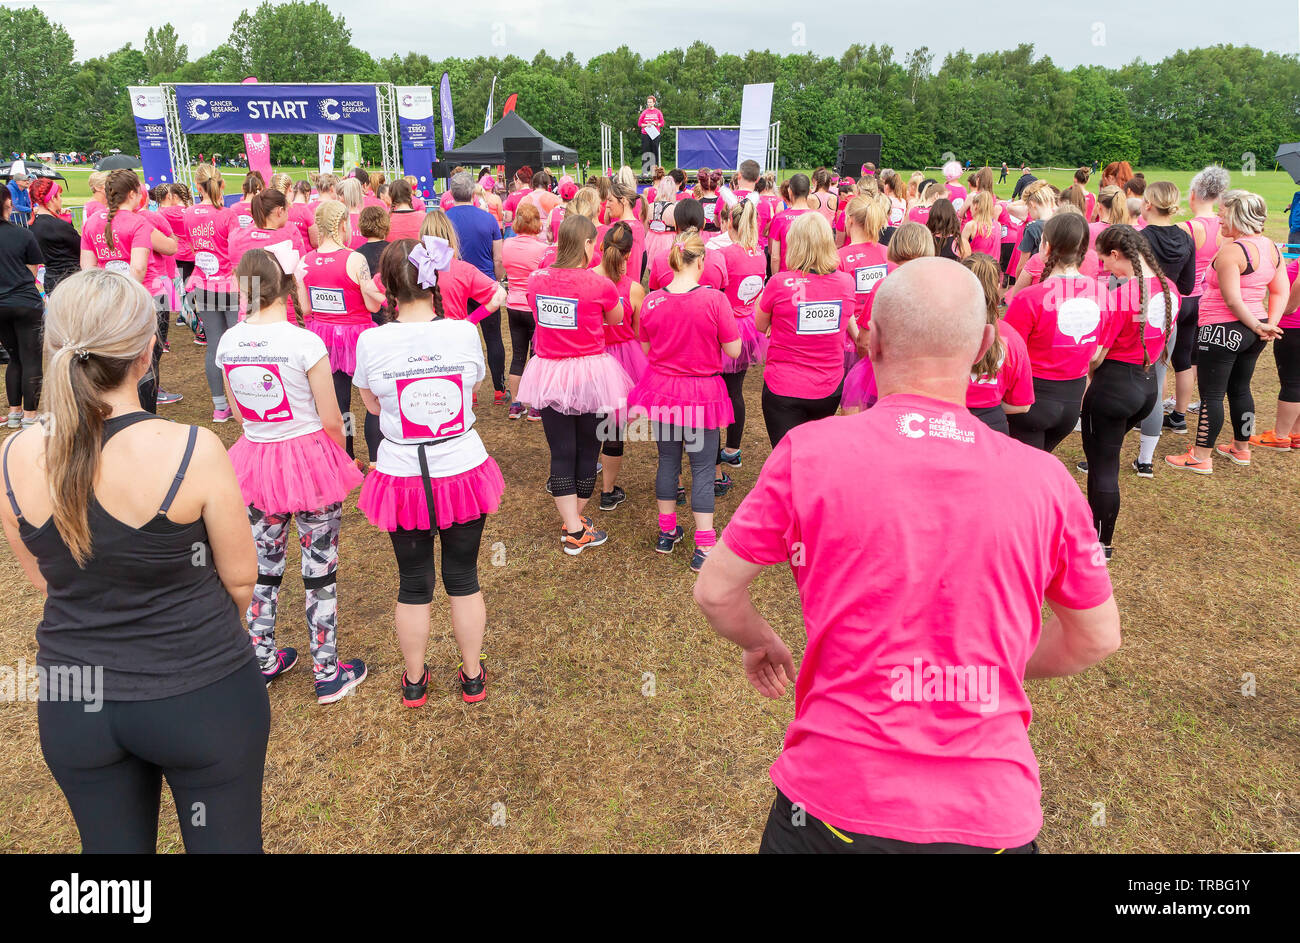 Warrington, UK. 2nd June 2019. Warrington, UK. 2nd June 2019. Race for Life 2019, Warrington, in aid of Cancer Research. Pre-race talk prior to the start of the race Credit: John Hopkins/Alamy Live News - Stock Image